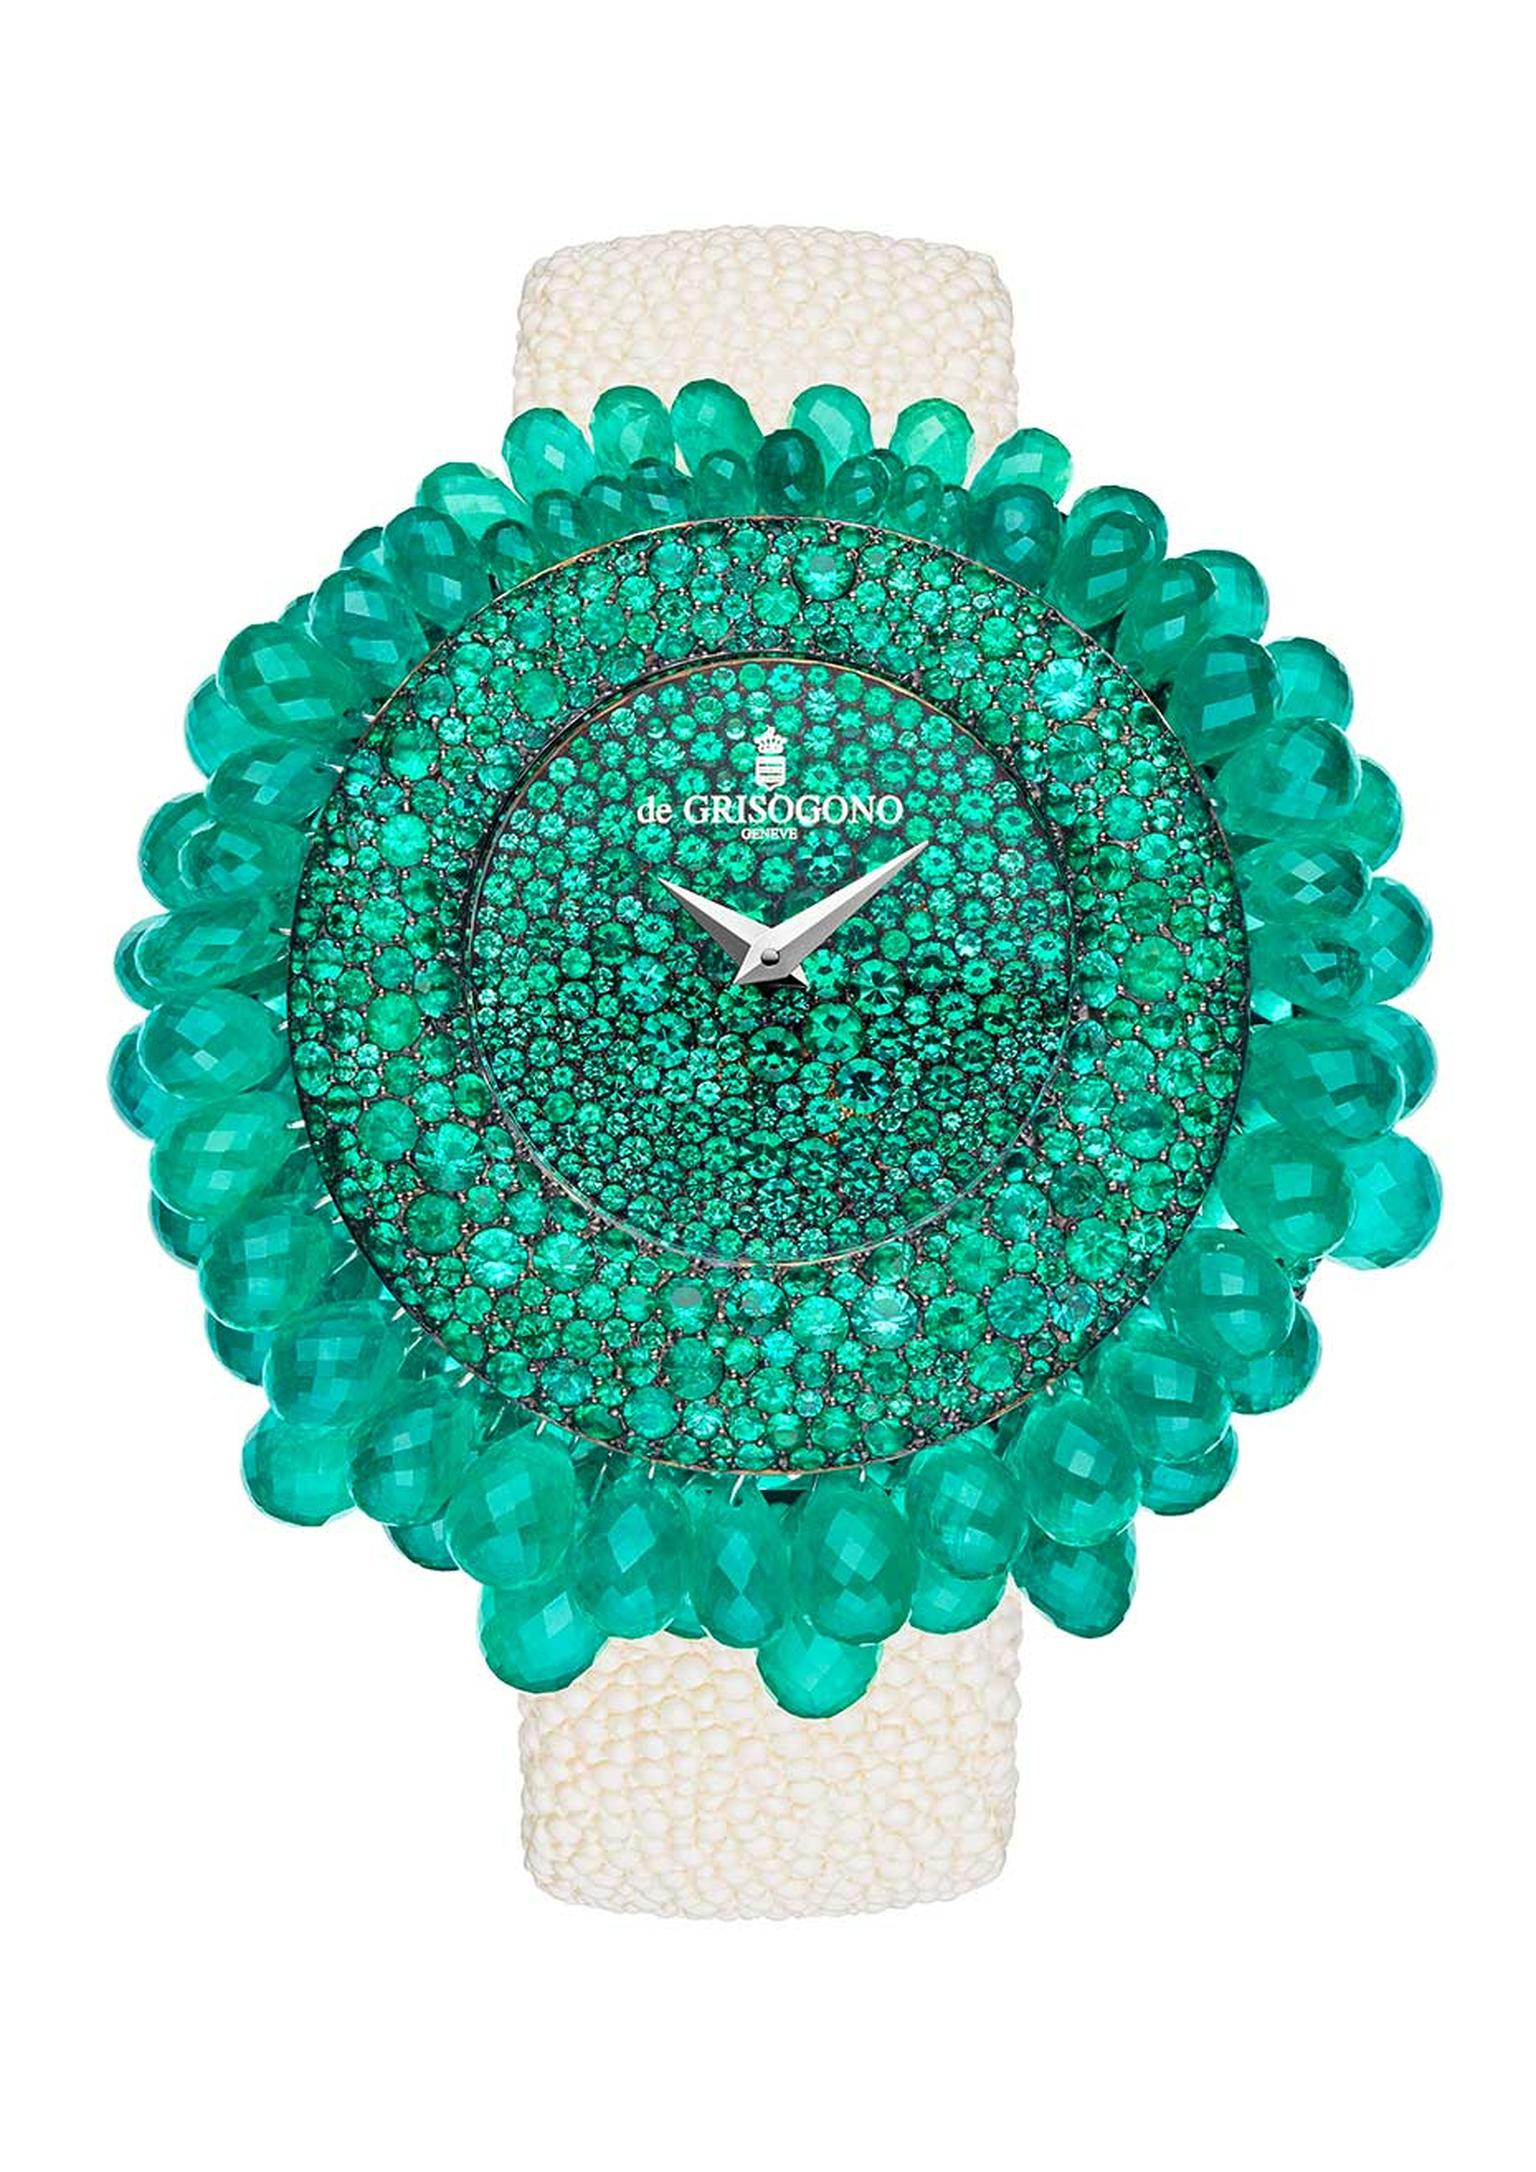 de GRISOGONO's Grappoli watch features emeralds that emanate from the centre of the watch, growing in size and spilling over the bezel in clusters.